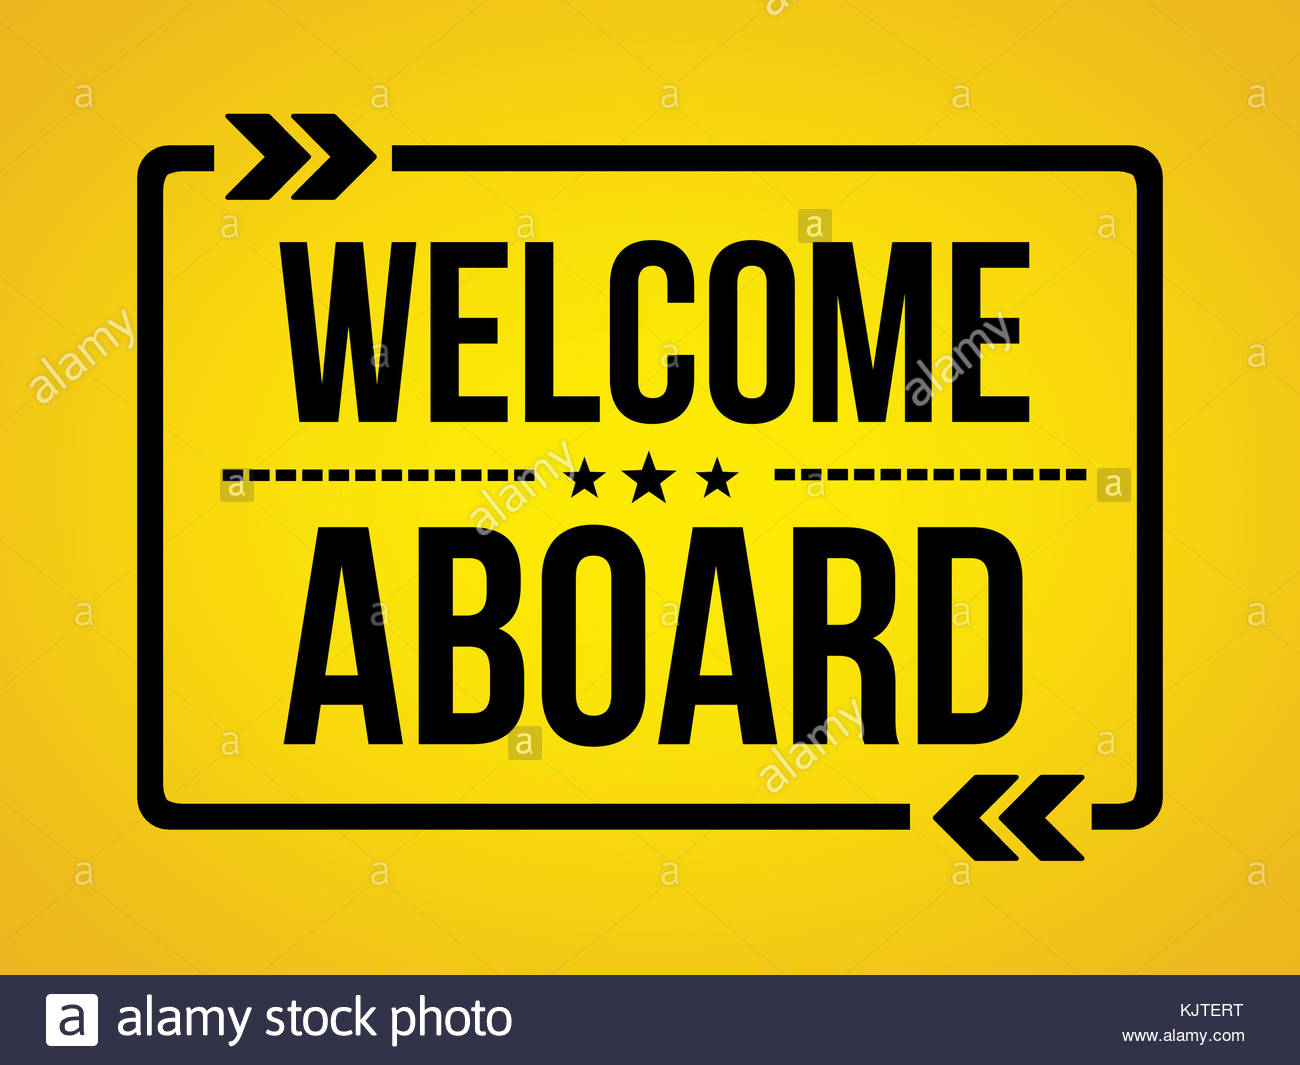 Welcome Aboard Wallpaper Message Stock Photo 166495612 Alamy